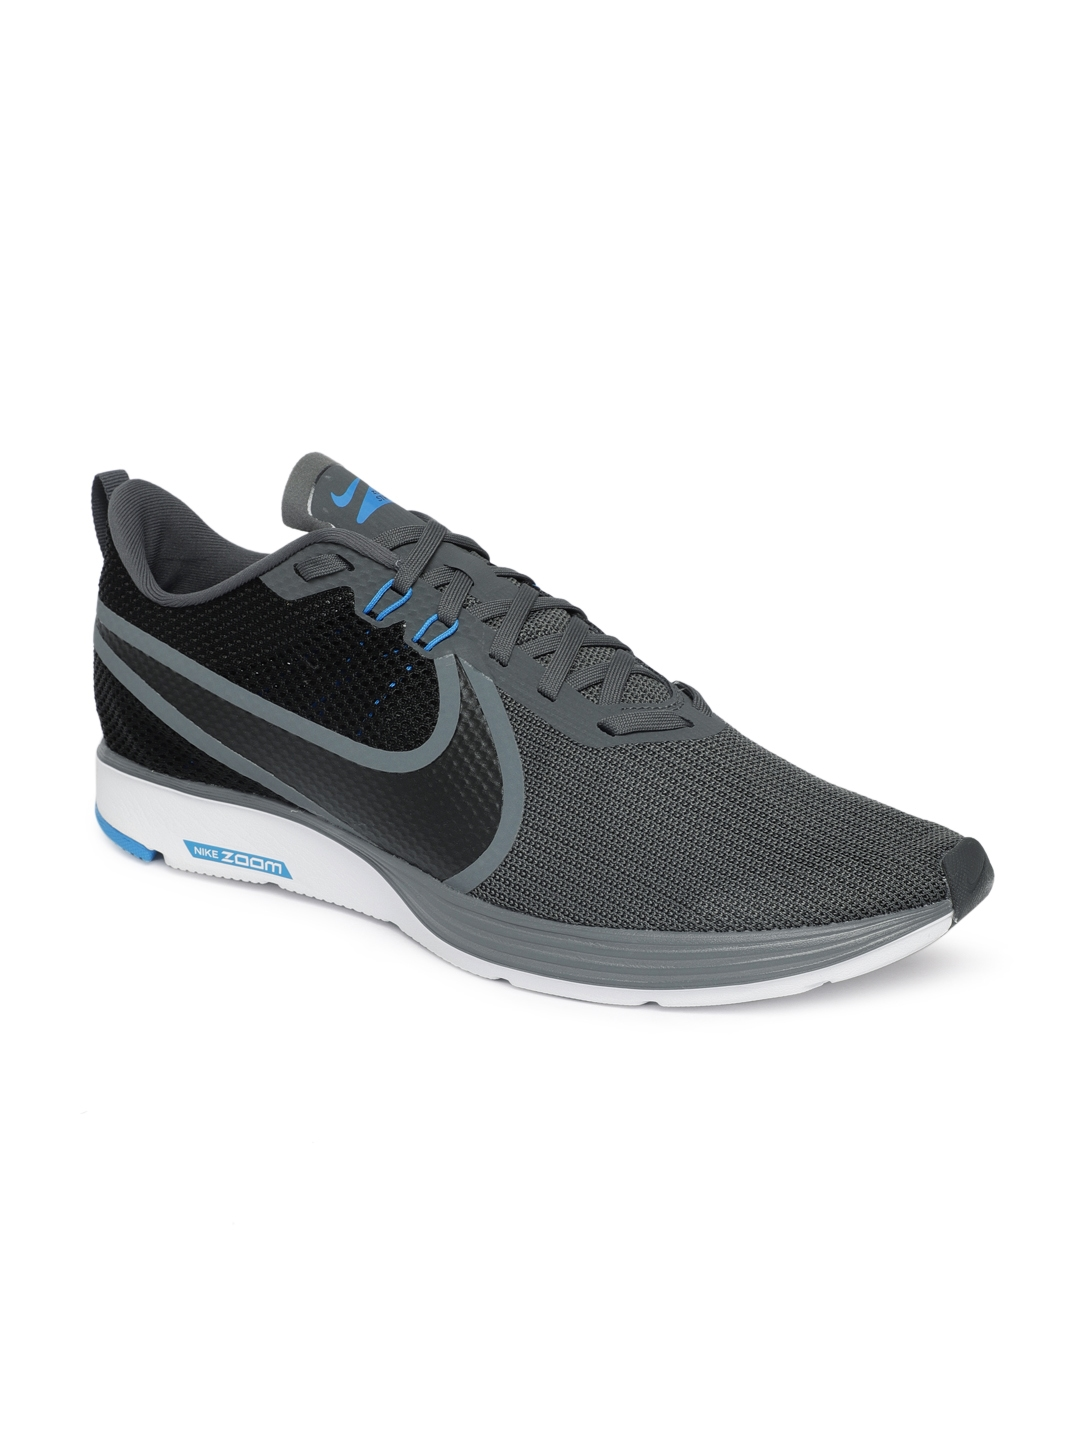 baa5c53bbd2 Buy Nike Men Grey ZOOM STRIKE 2 Running Shoes - Sports Shoes for Men ...